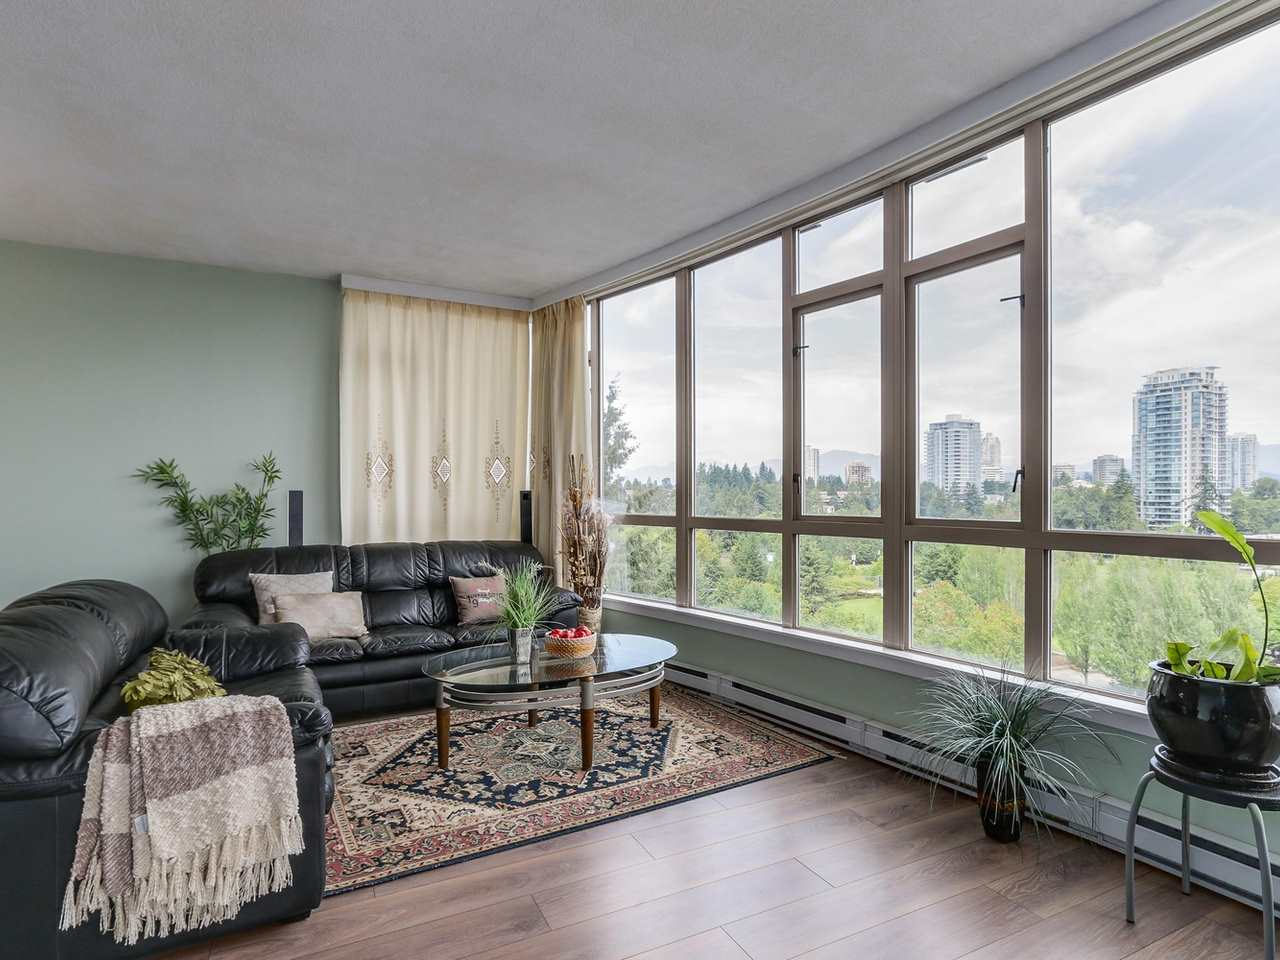 Photo 7: 1005 6888 STATION HILL Drive in Burnaby: South Slope Condo for sale (Burnaby South)  : MLS® # R2125491